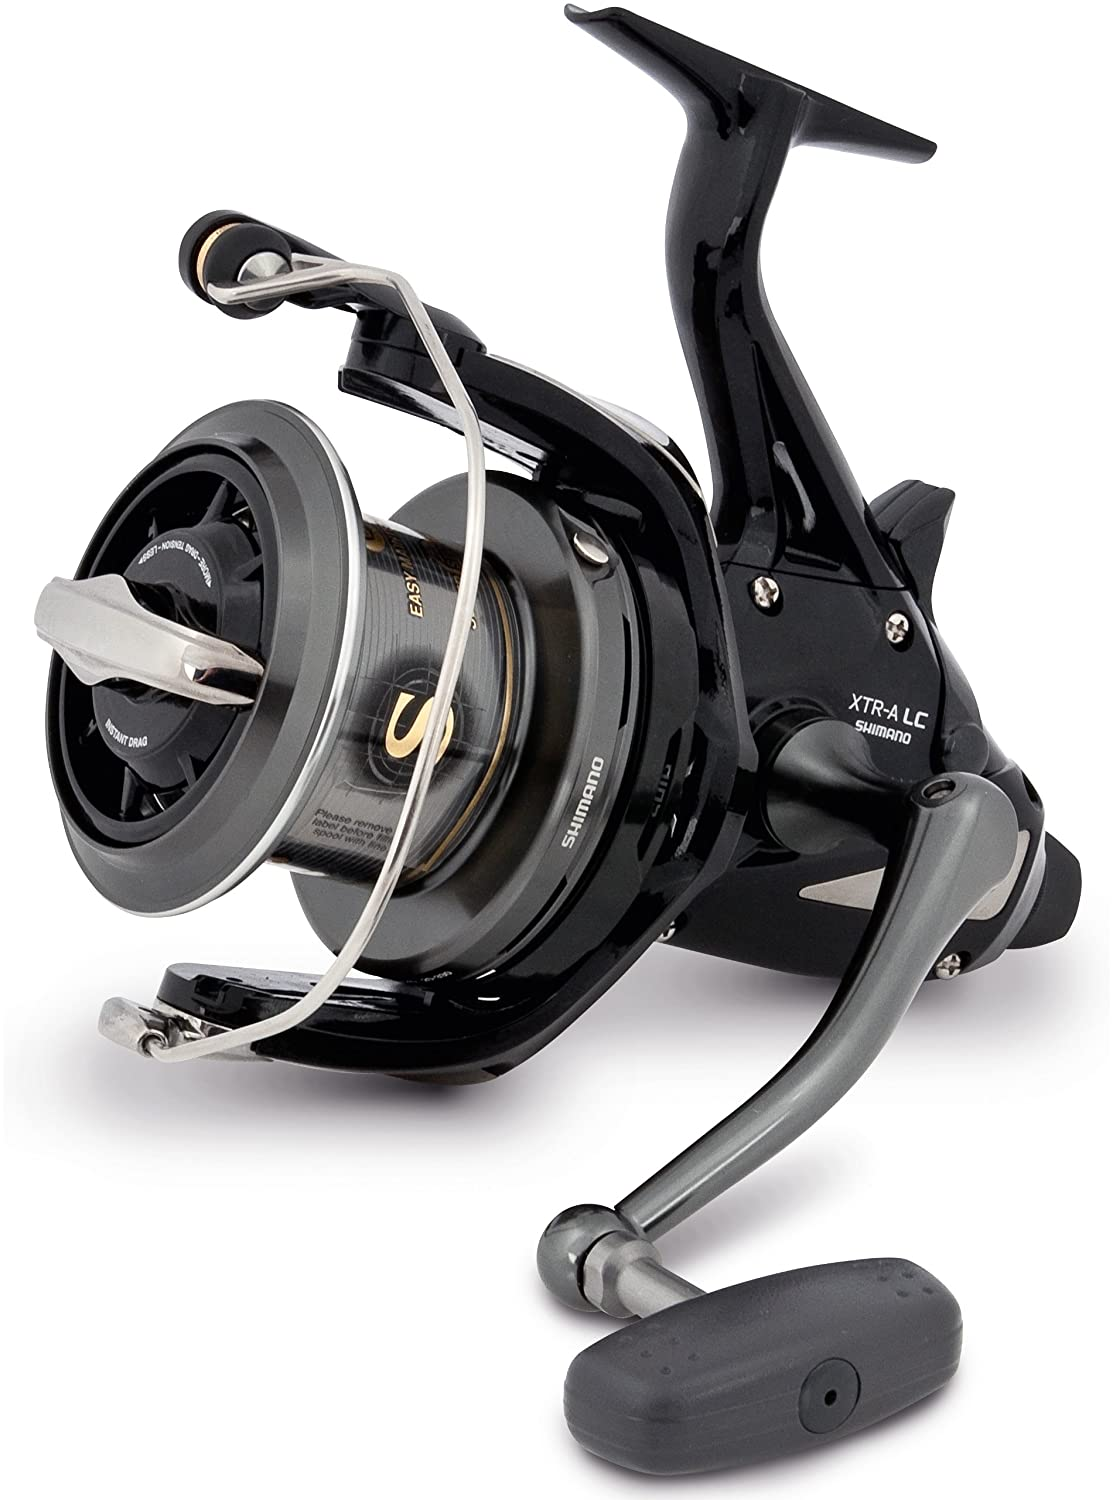 Shimano Medium Baitrunner CI4 XTR A Longcast, Baitrunner Carpfishing And Surfcasting Fishing Reel, MBTRCI4XTRALC